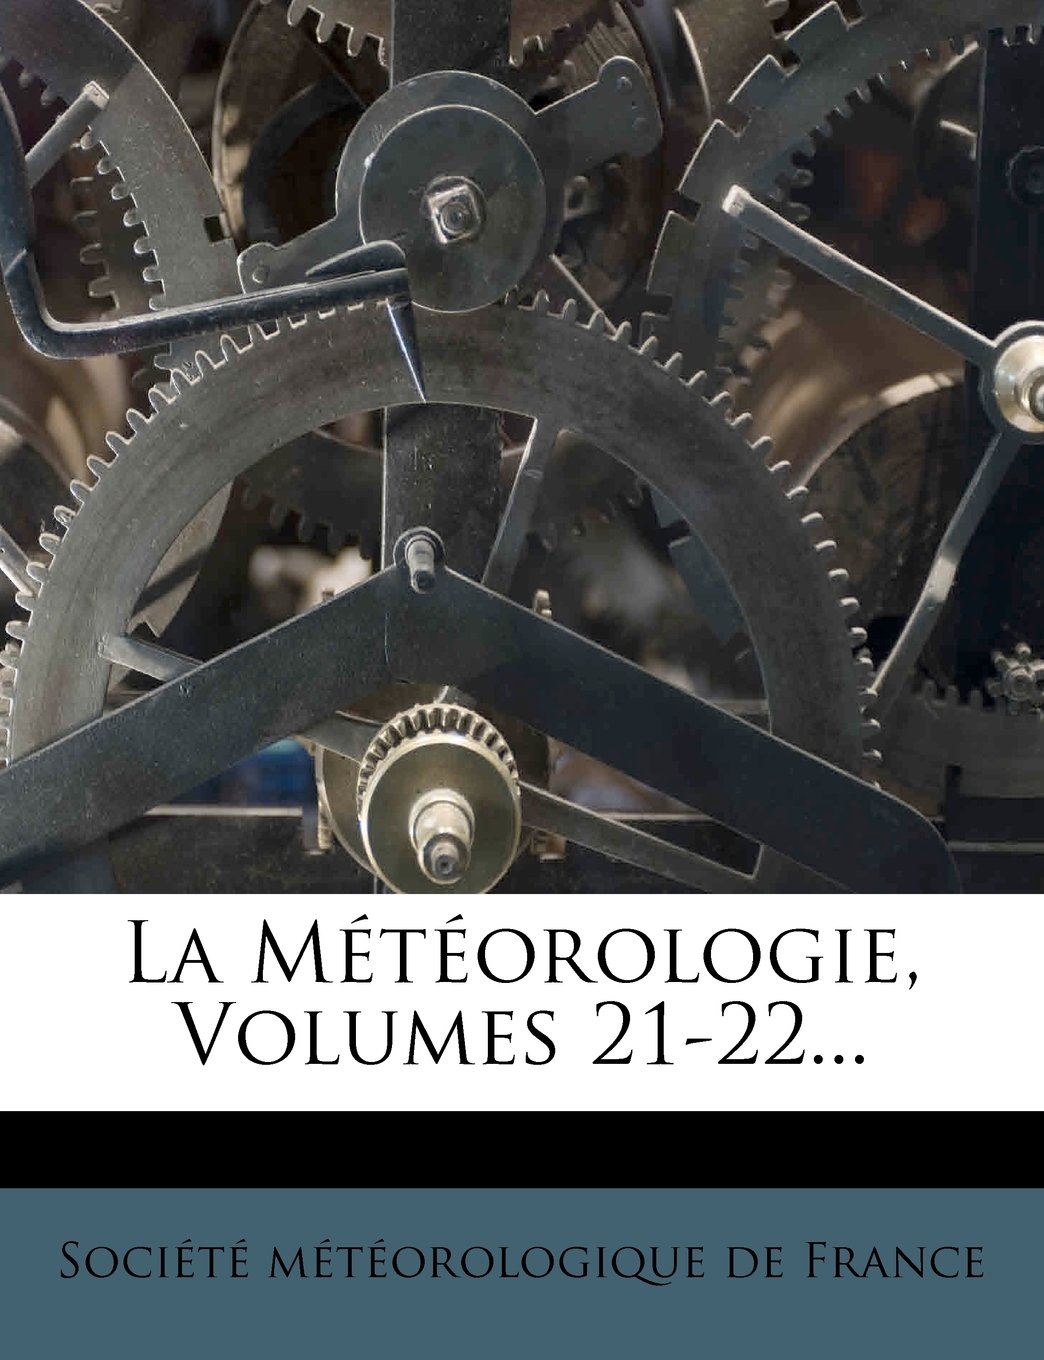 La Meteorologie, Volumes 21-22... (French Edition) PDF